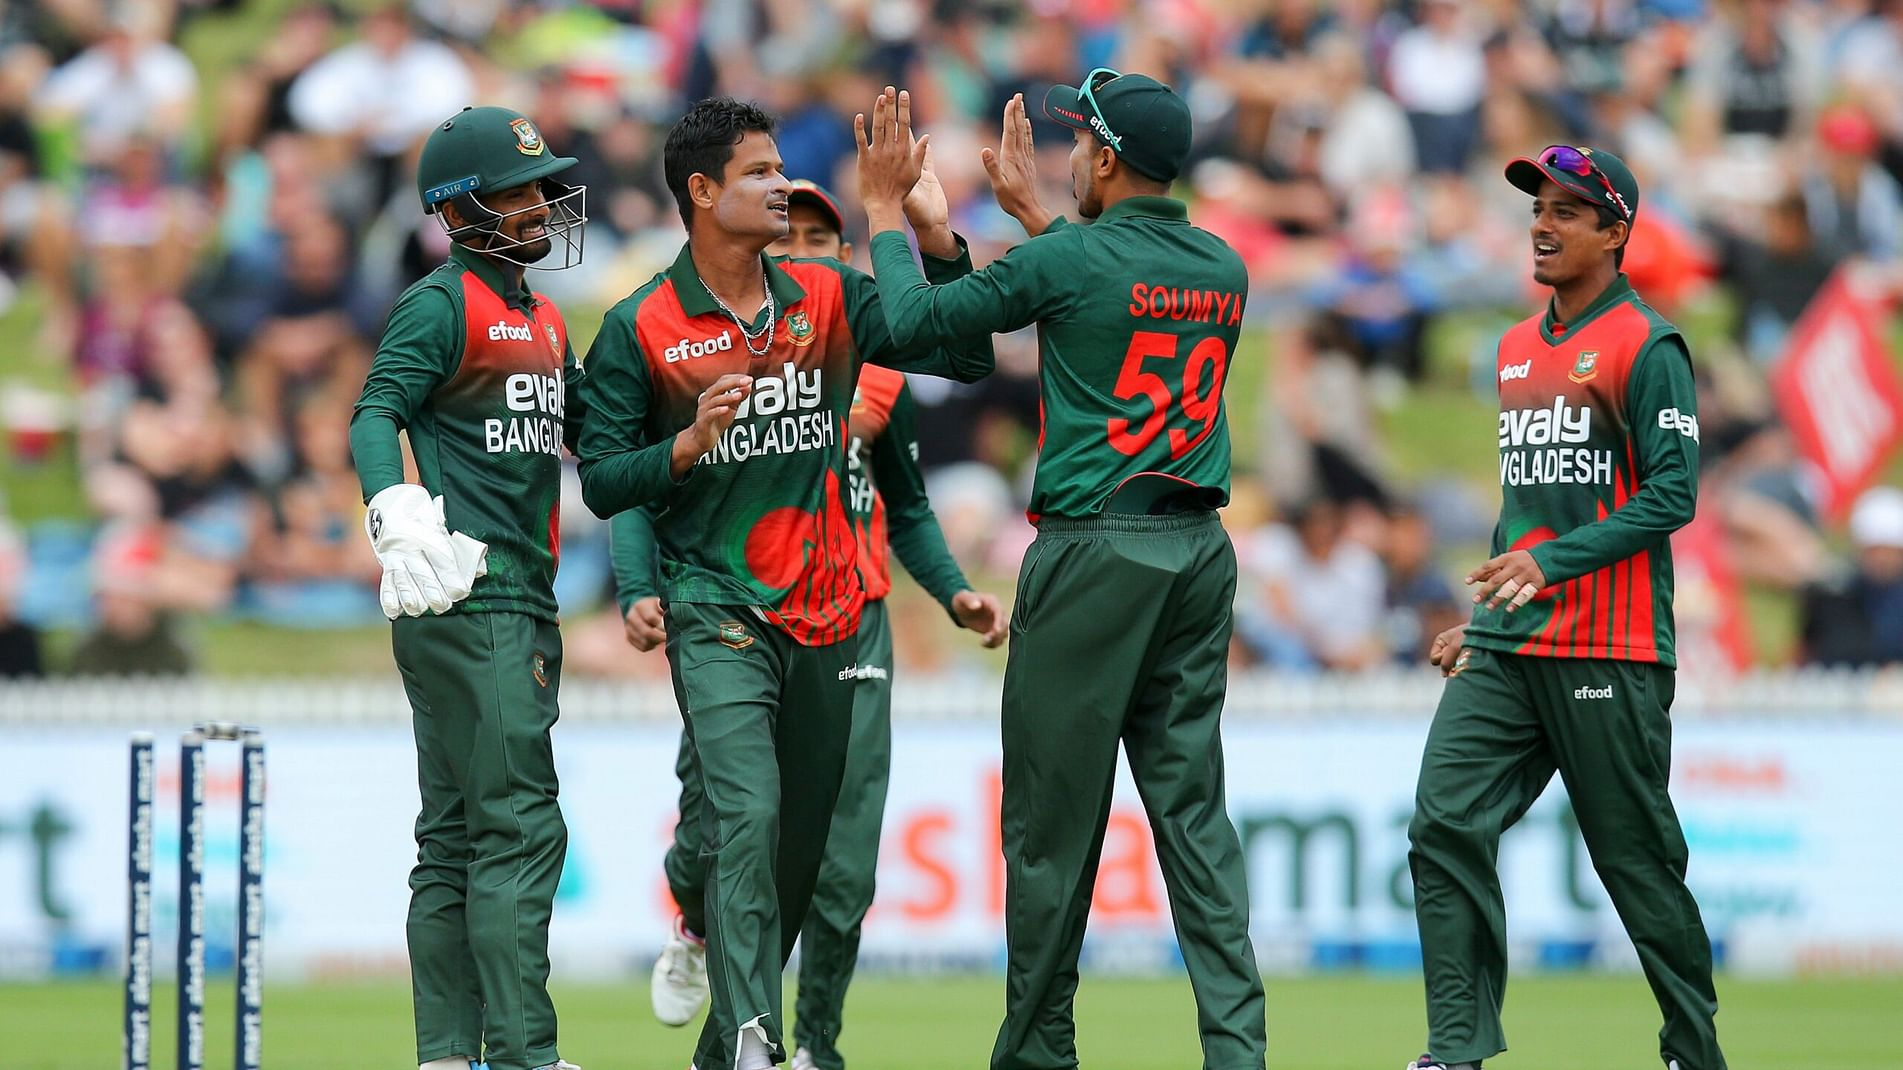 Bangladesh announces squad for T20 World Cup